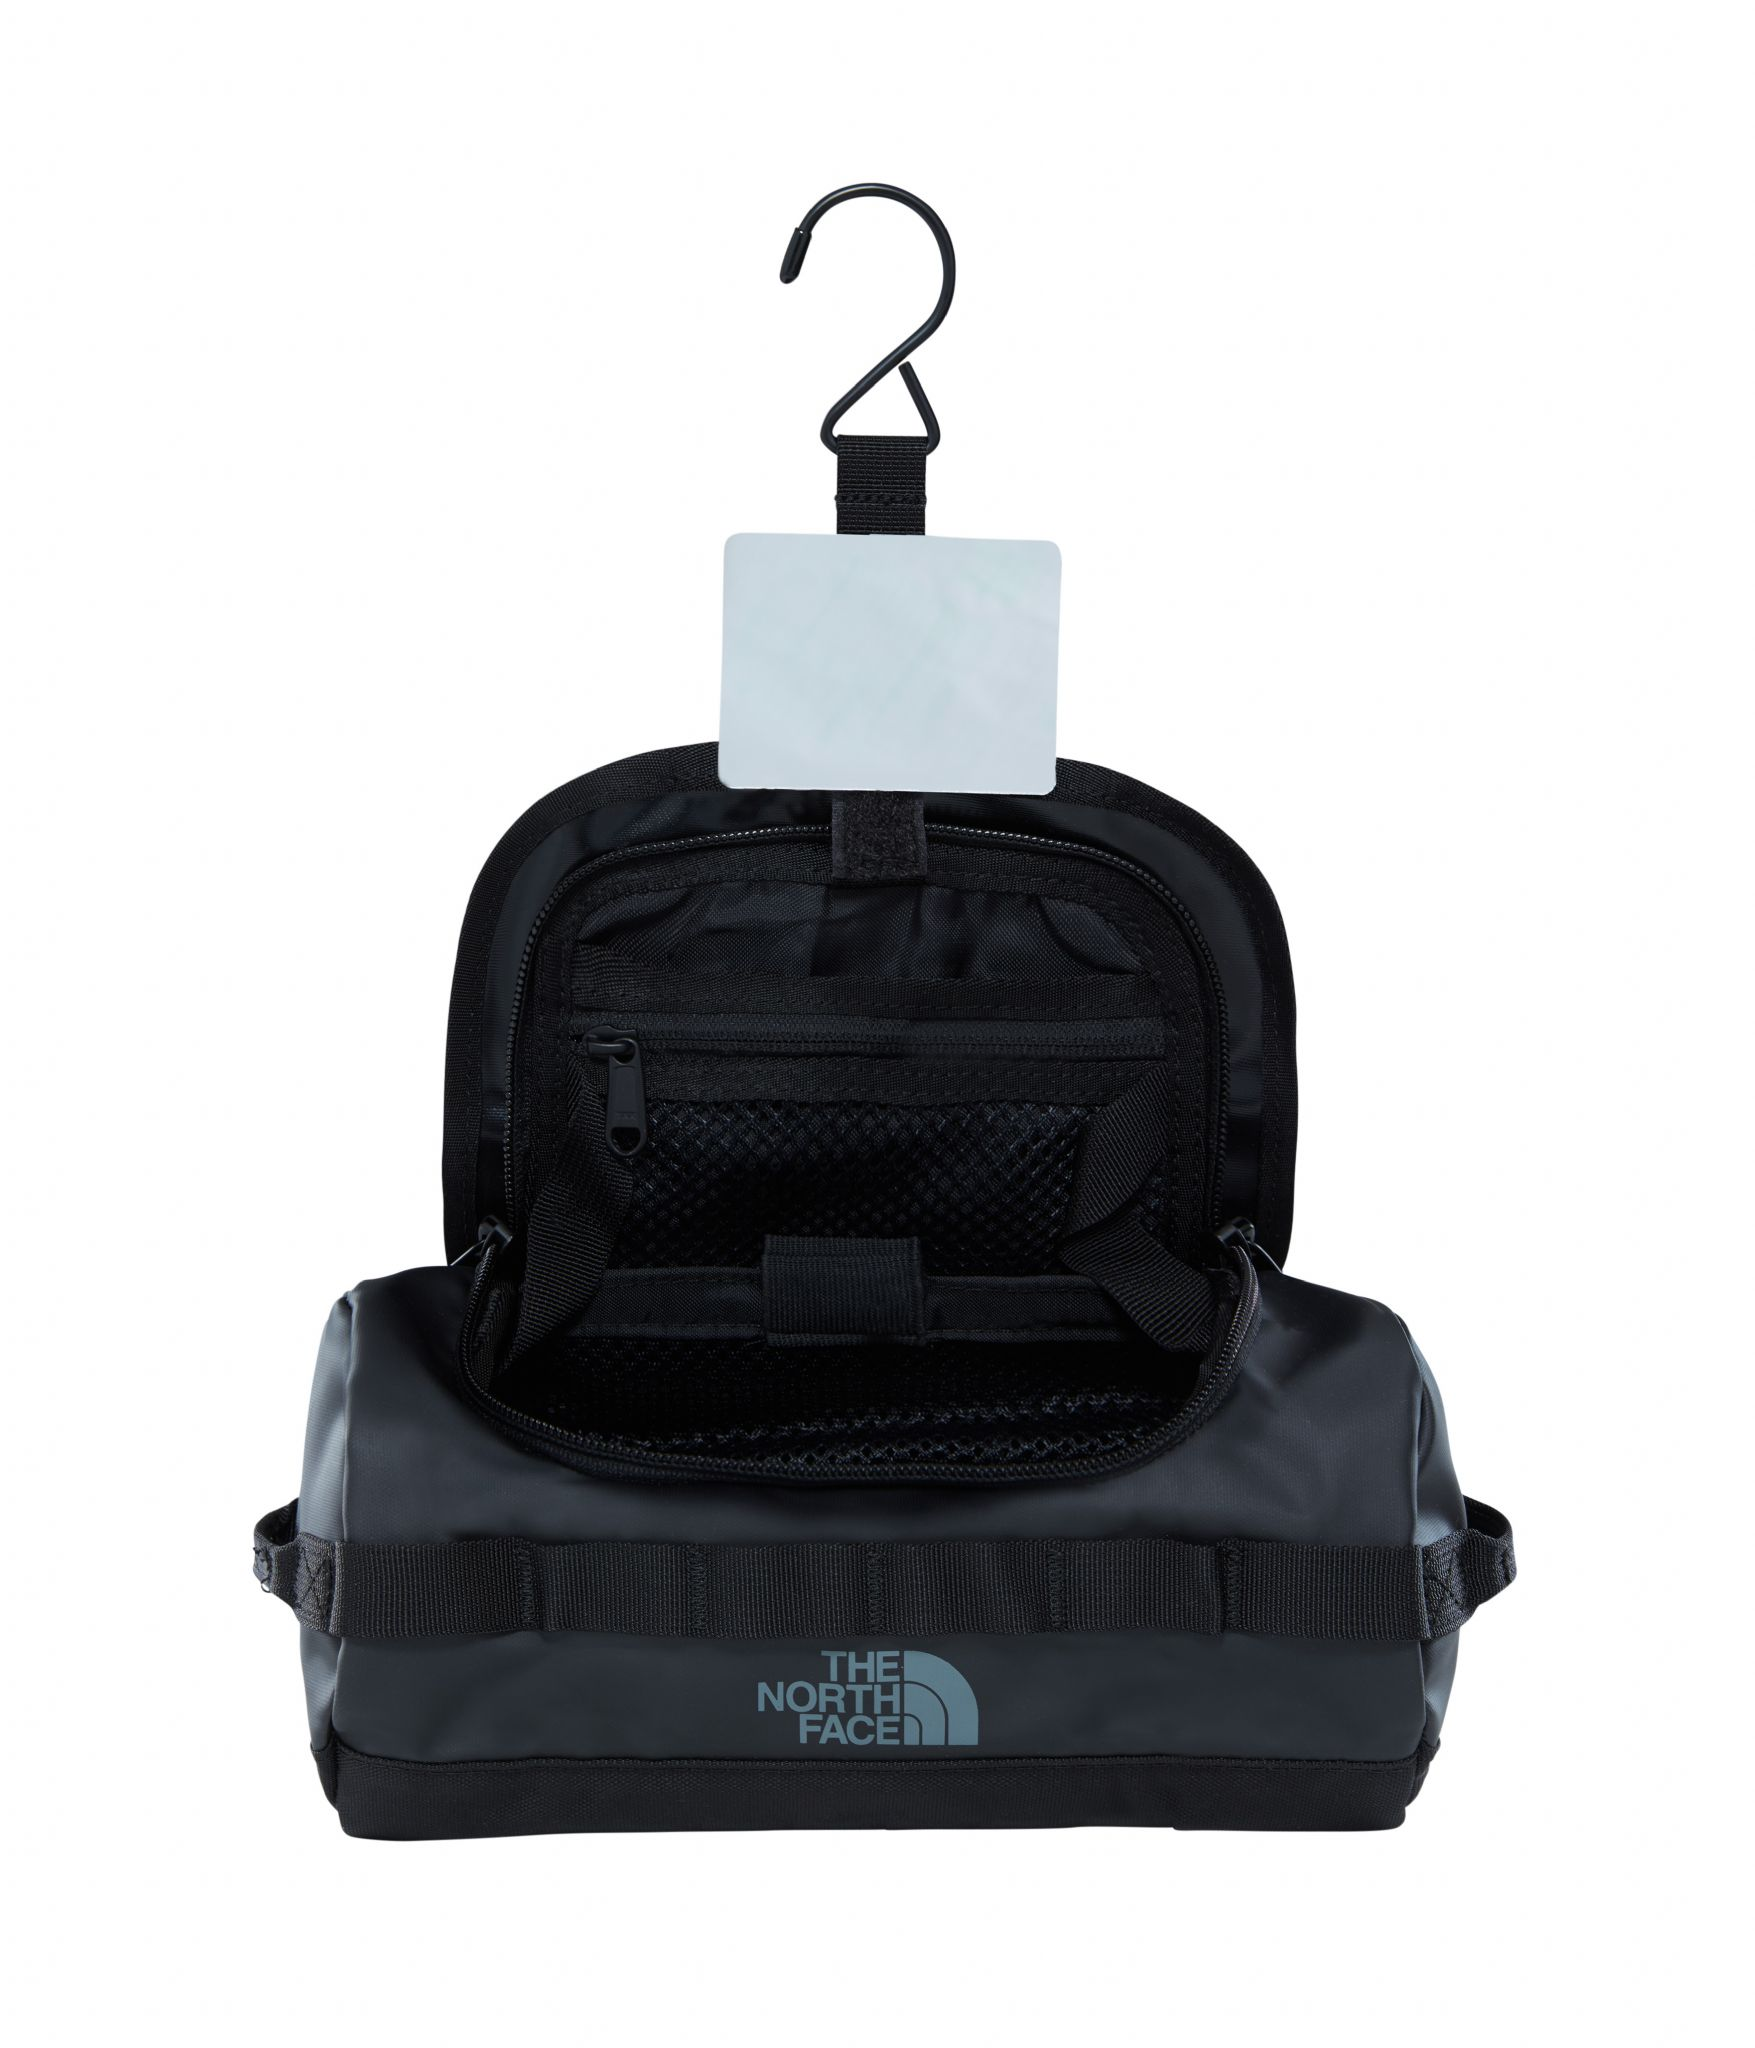 Nikwax Travel Towel: The North Face Base Camp Travel Canister Storage Travel Bag